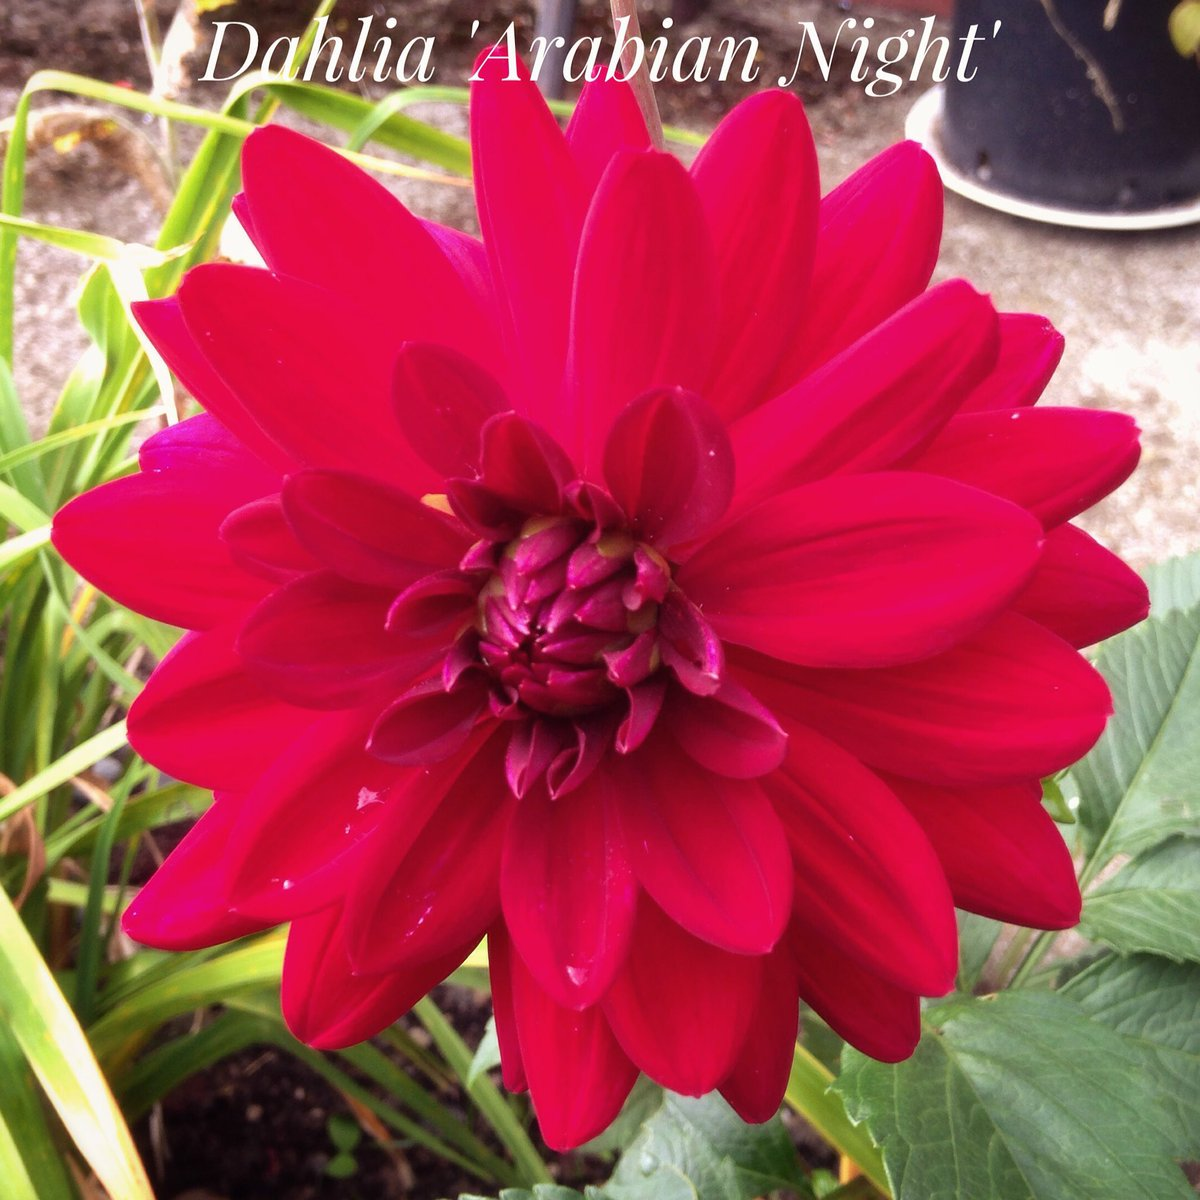 The smooth and silky looking Dahlia &#39;Arabian Night&#39; has graced us with its presence #fáilte #welcome <br>http://pic.twitter.com/8iqslnvYQy